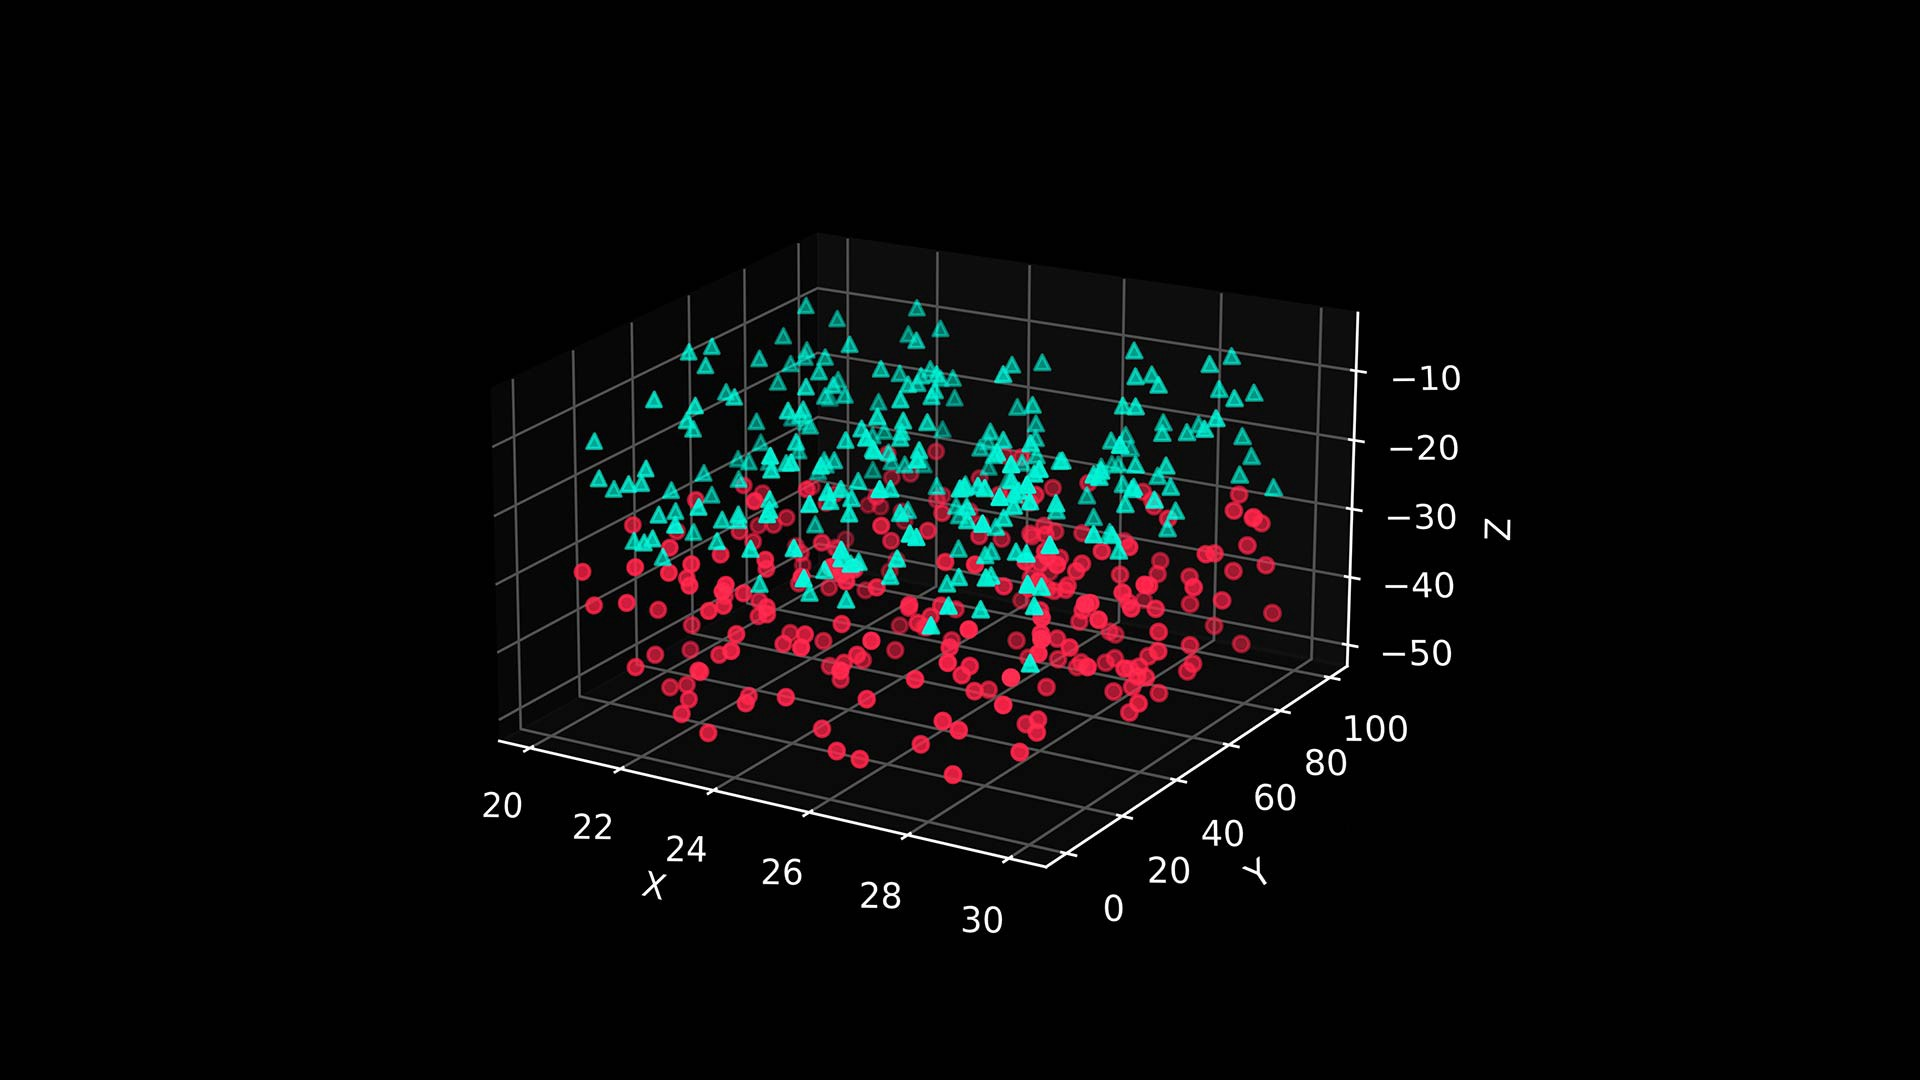 Image by the author, generated with Python to illustrate a random number generation in the scatterplot.